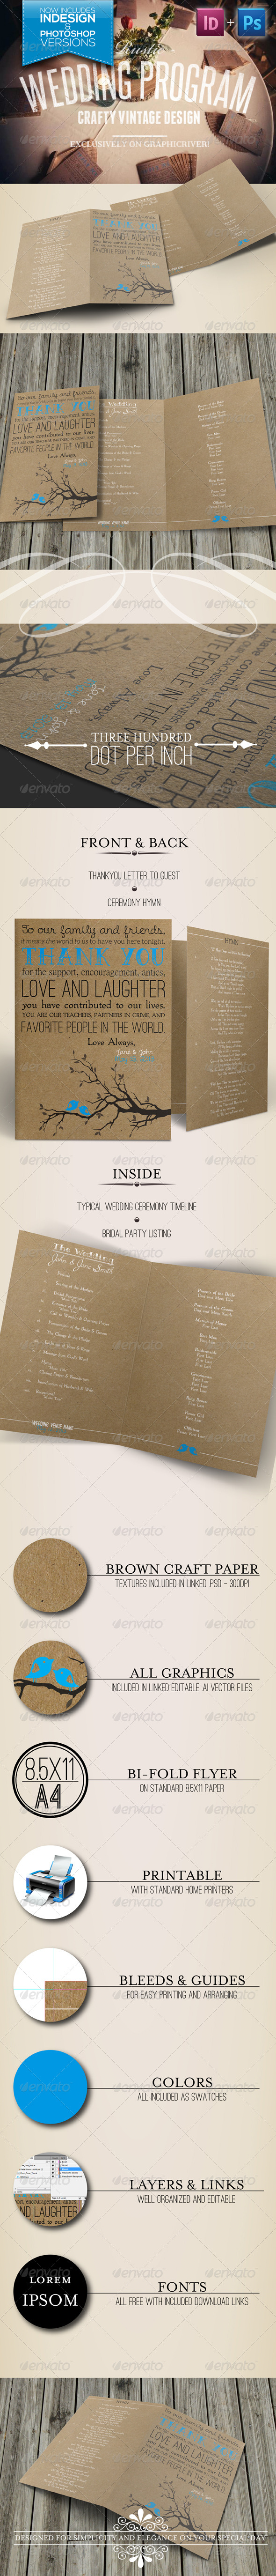 Rustic Wedding Program - Weddings Cards & Invites